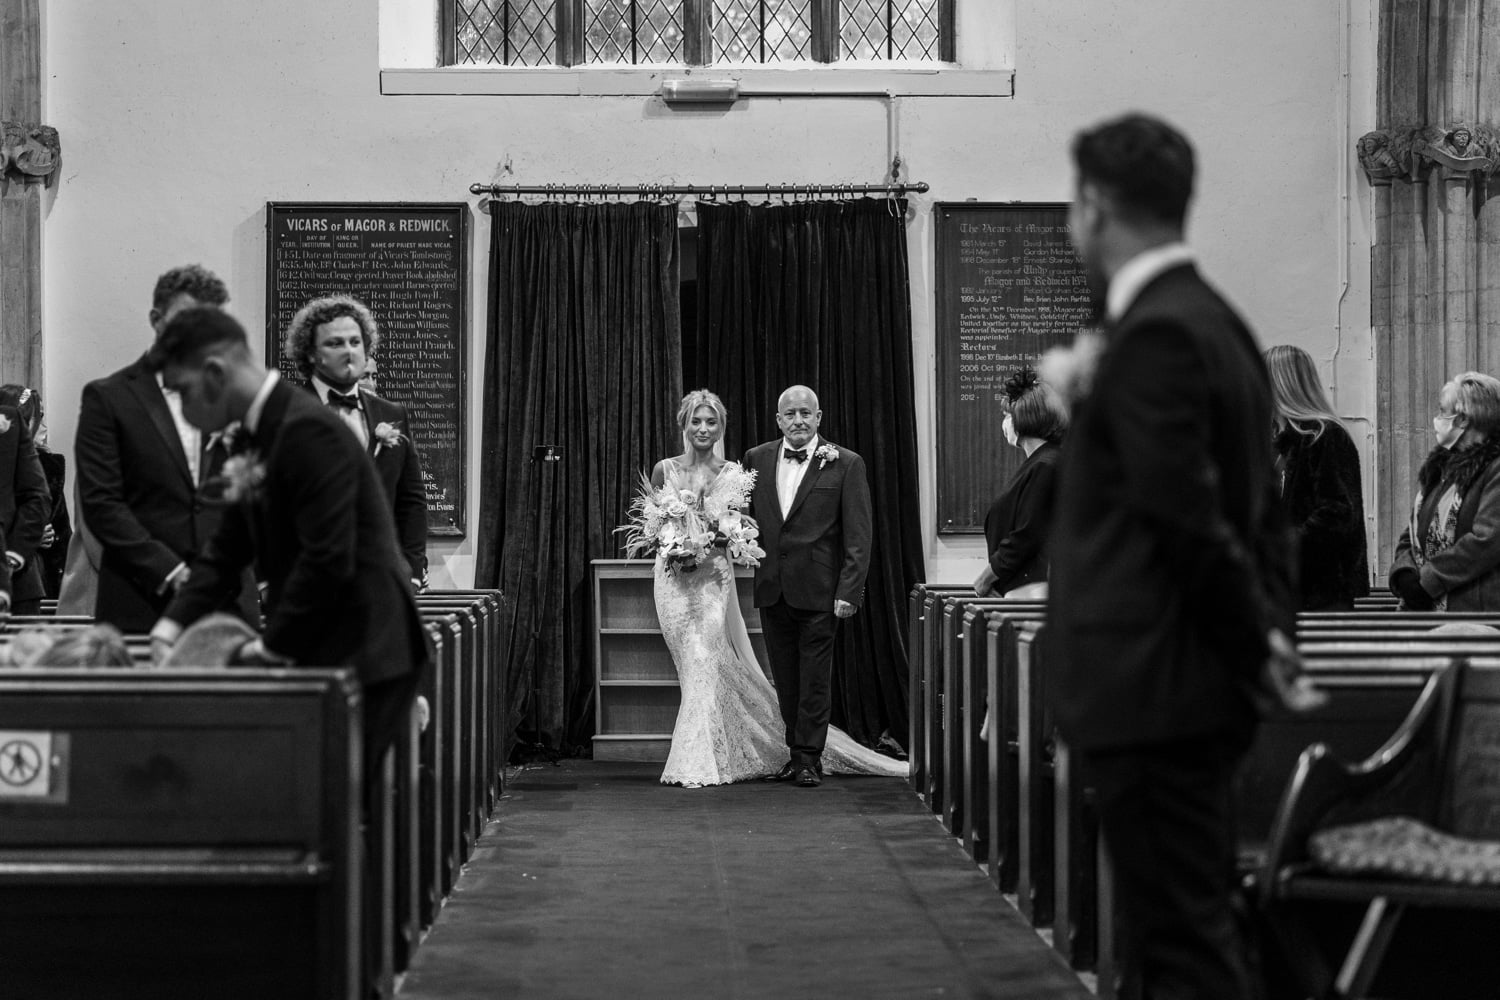 Marriage ceremony at St Mary's Church, Magor